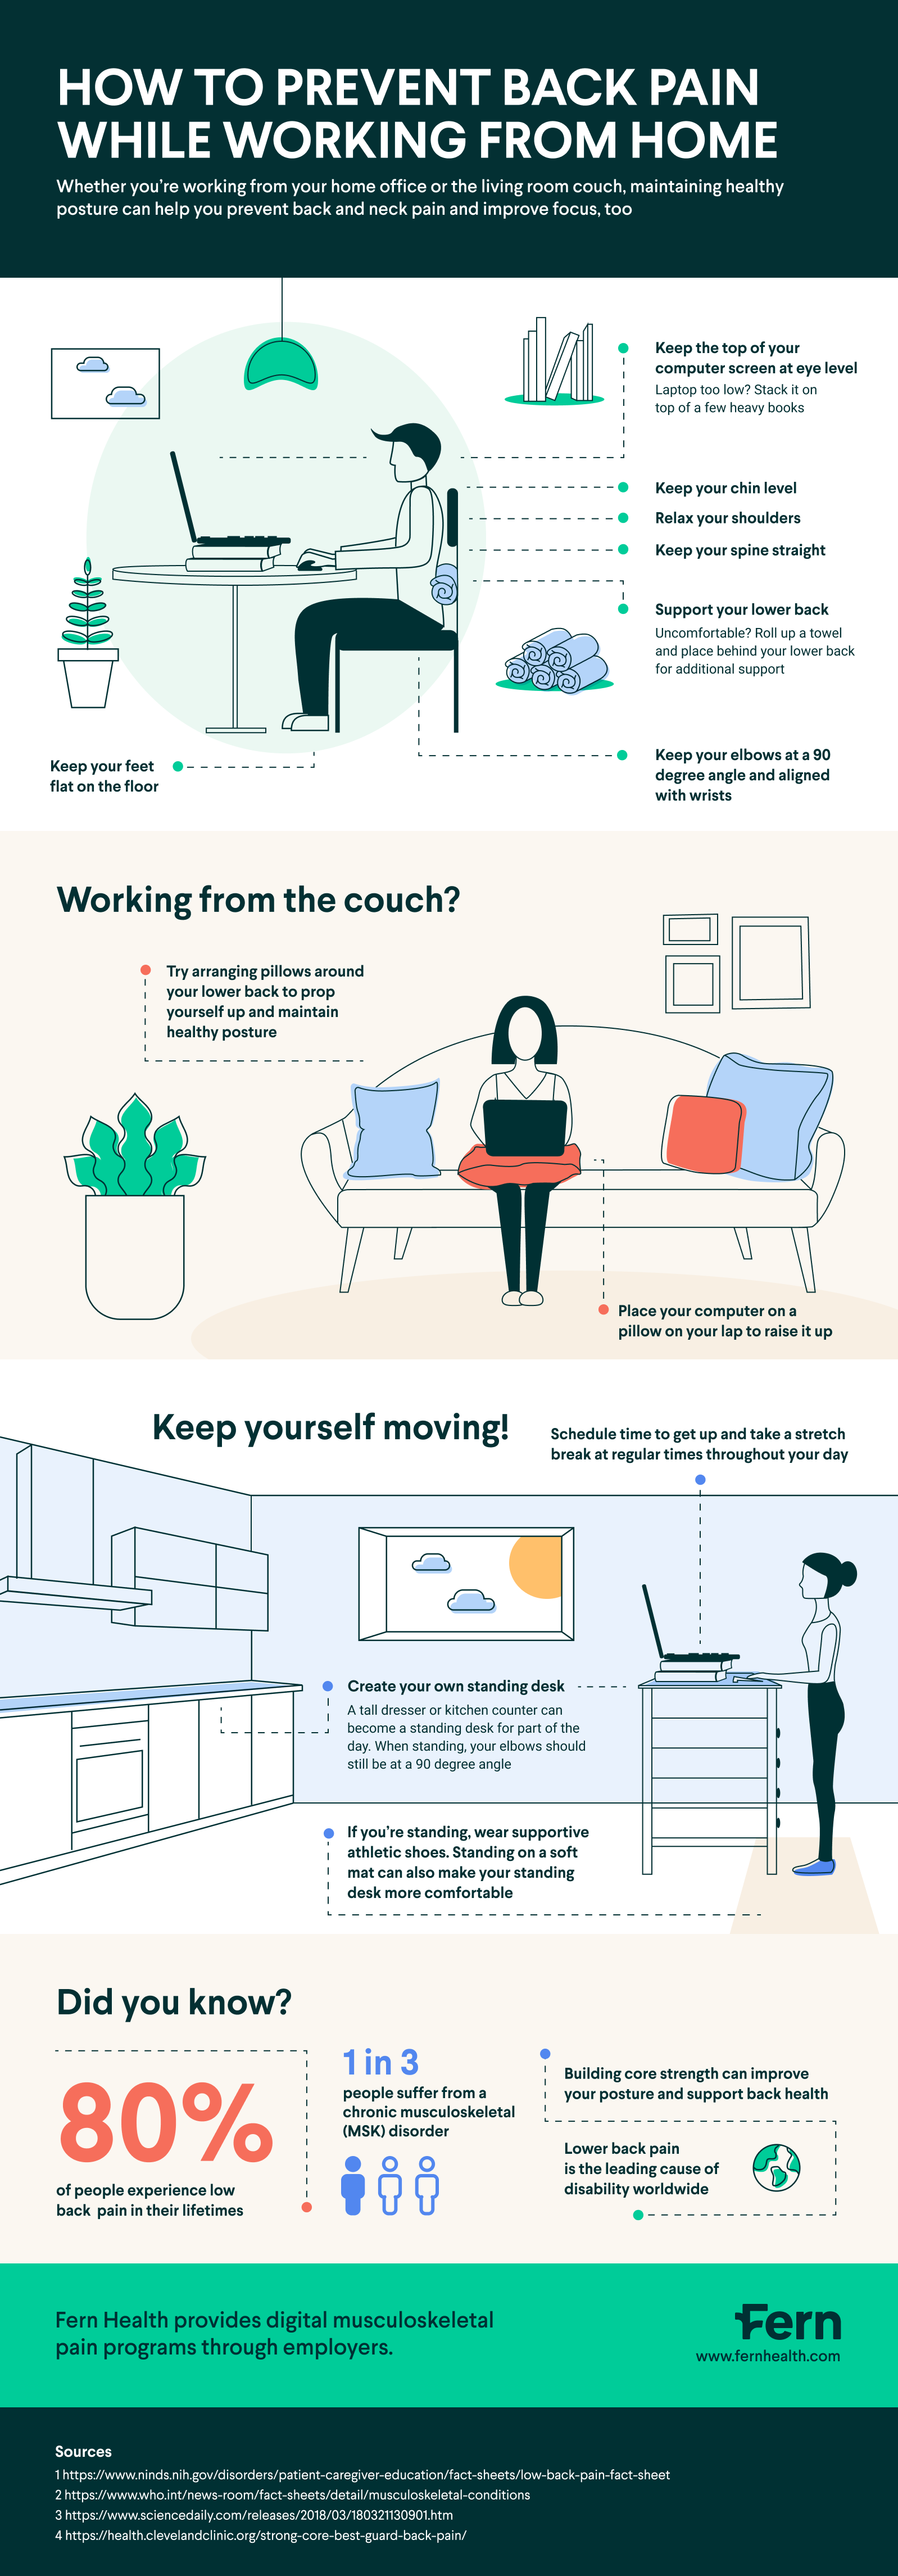 Avoiding Back Pain When Working from Home [Infographic]